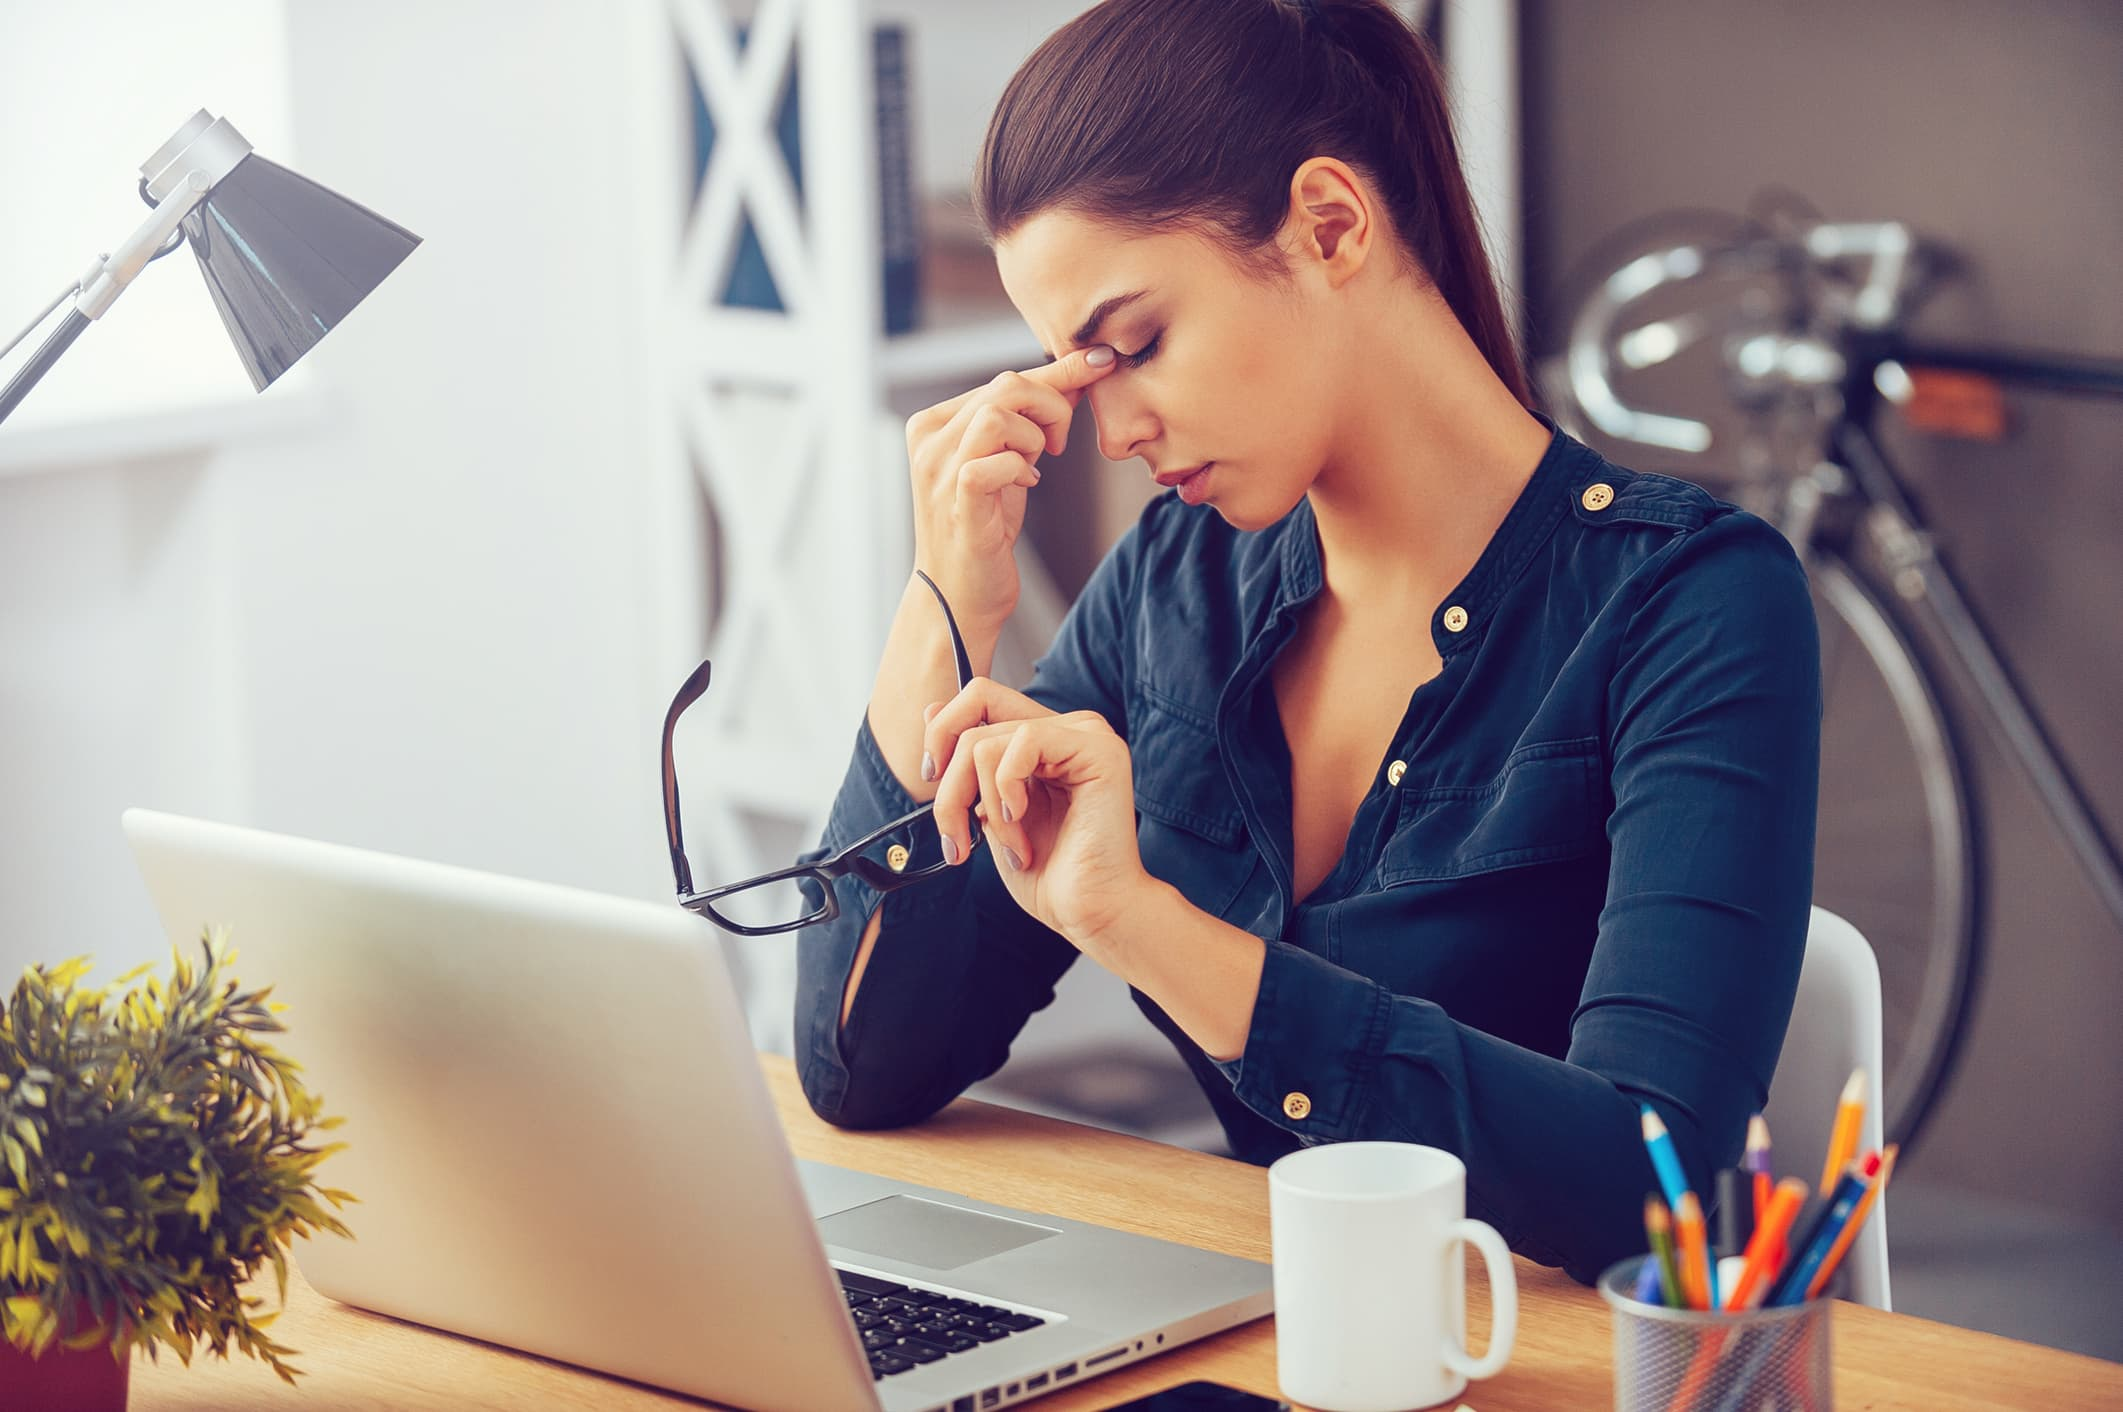 is sitting down for long periods of time really that bad? Here's how experts say it can affect different areas of the body and our overall health.